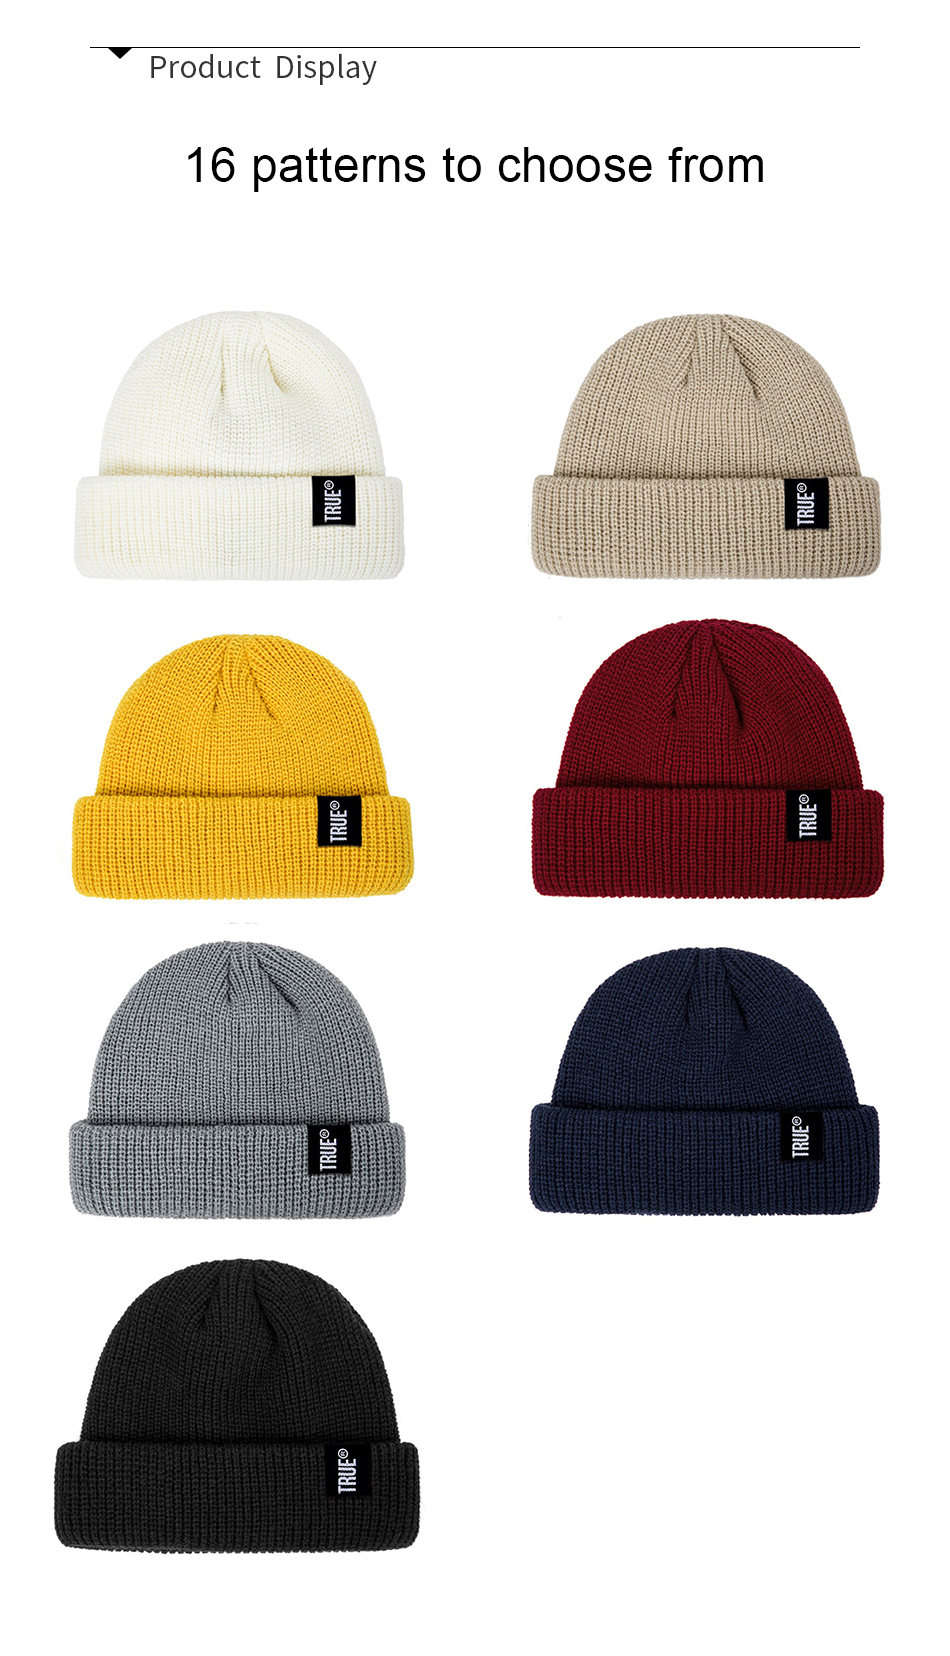 2021 Fashion Unisex Winter Hat Men Cuffed Cib Knit Hat Short Melon Ski Beanies Autumn Winter Solid Color Casual Beanie Hat 17